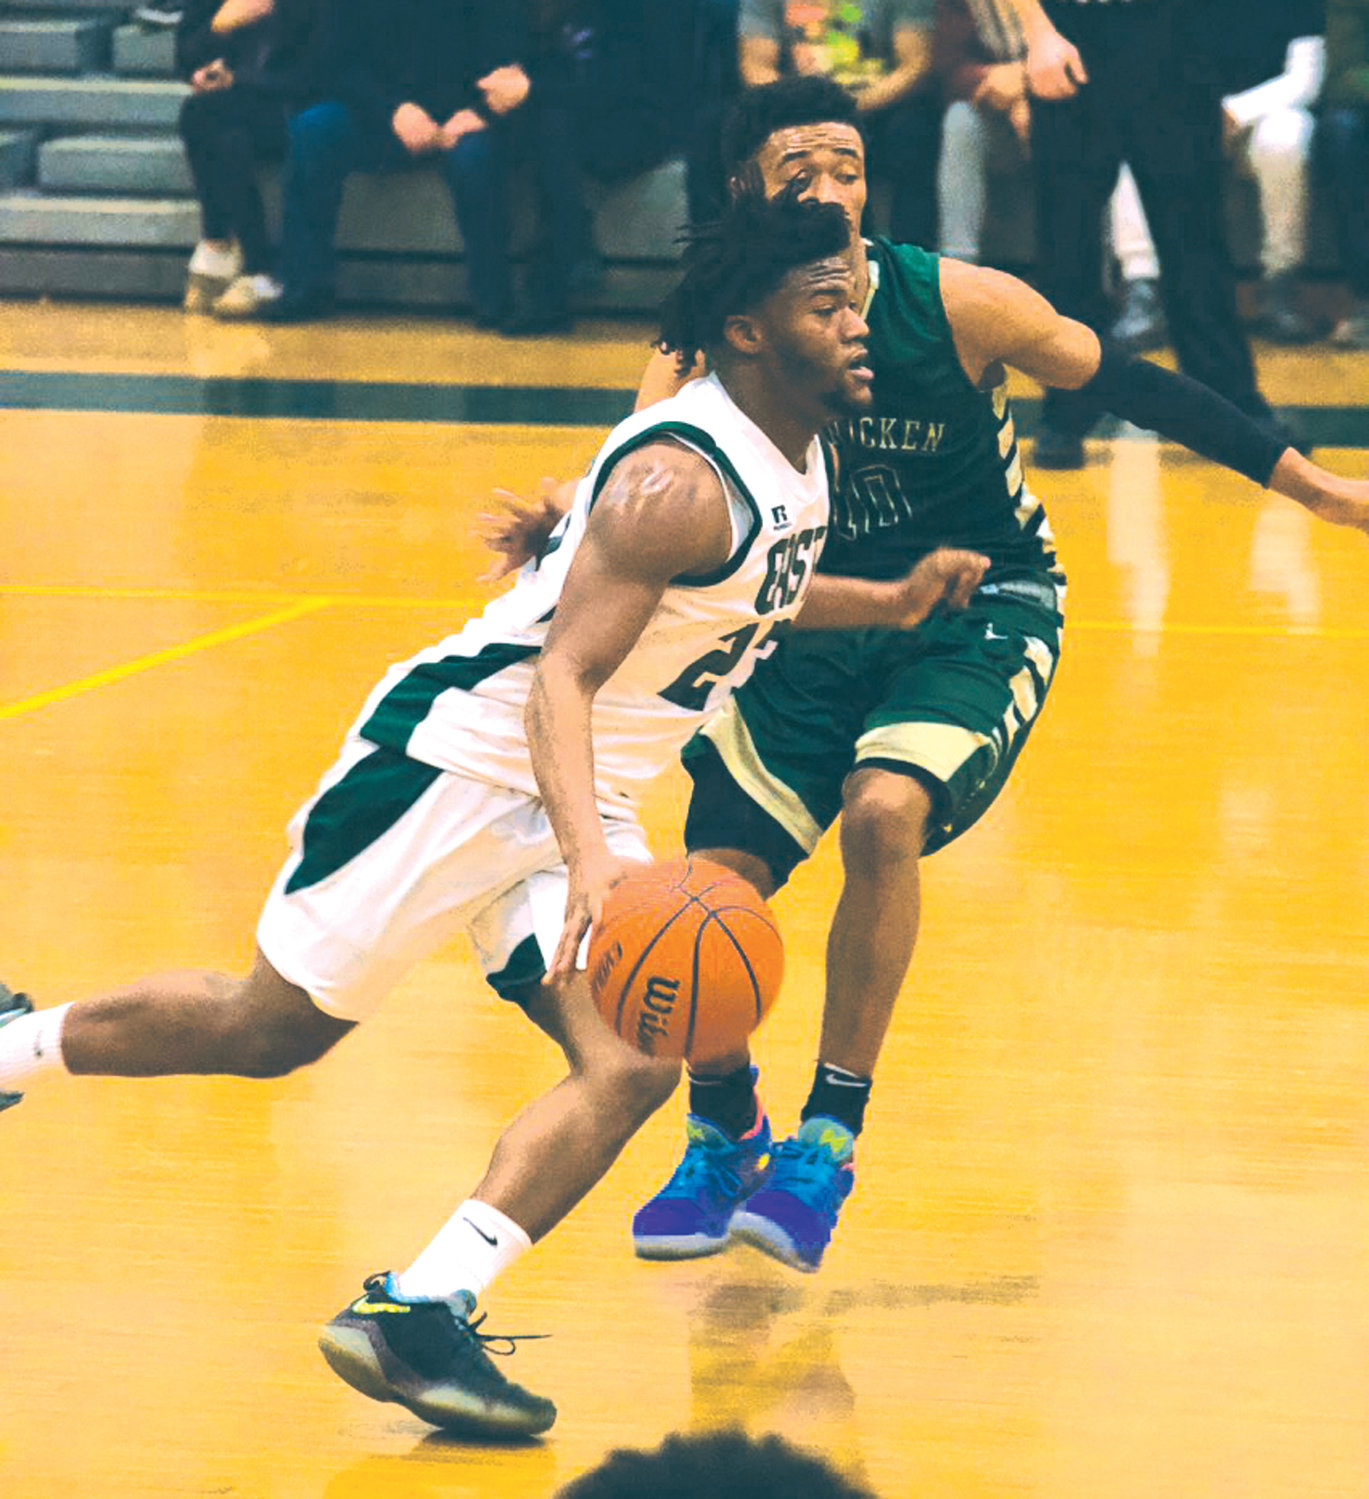 UP THE COURT: Cranston East's Aireus Raspberry works past a defender.